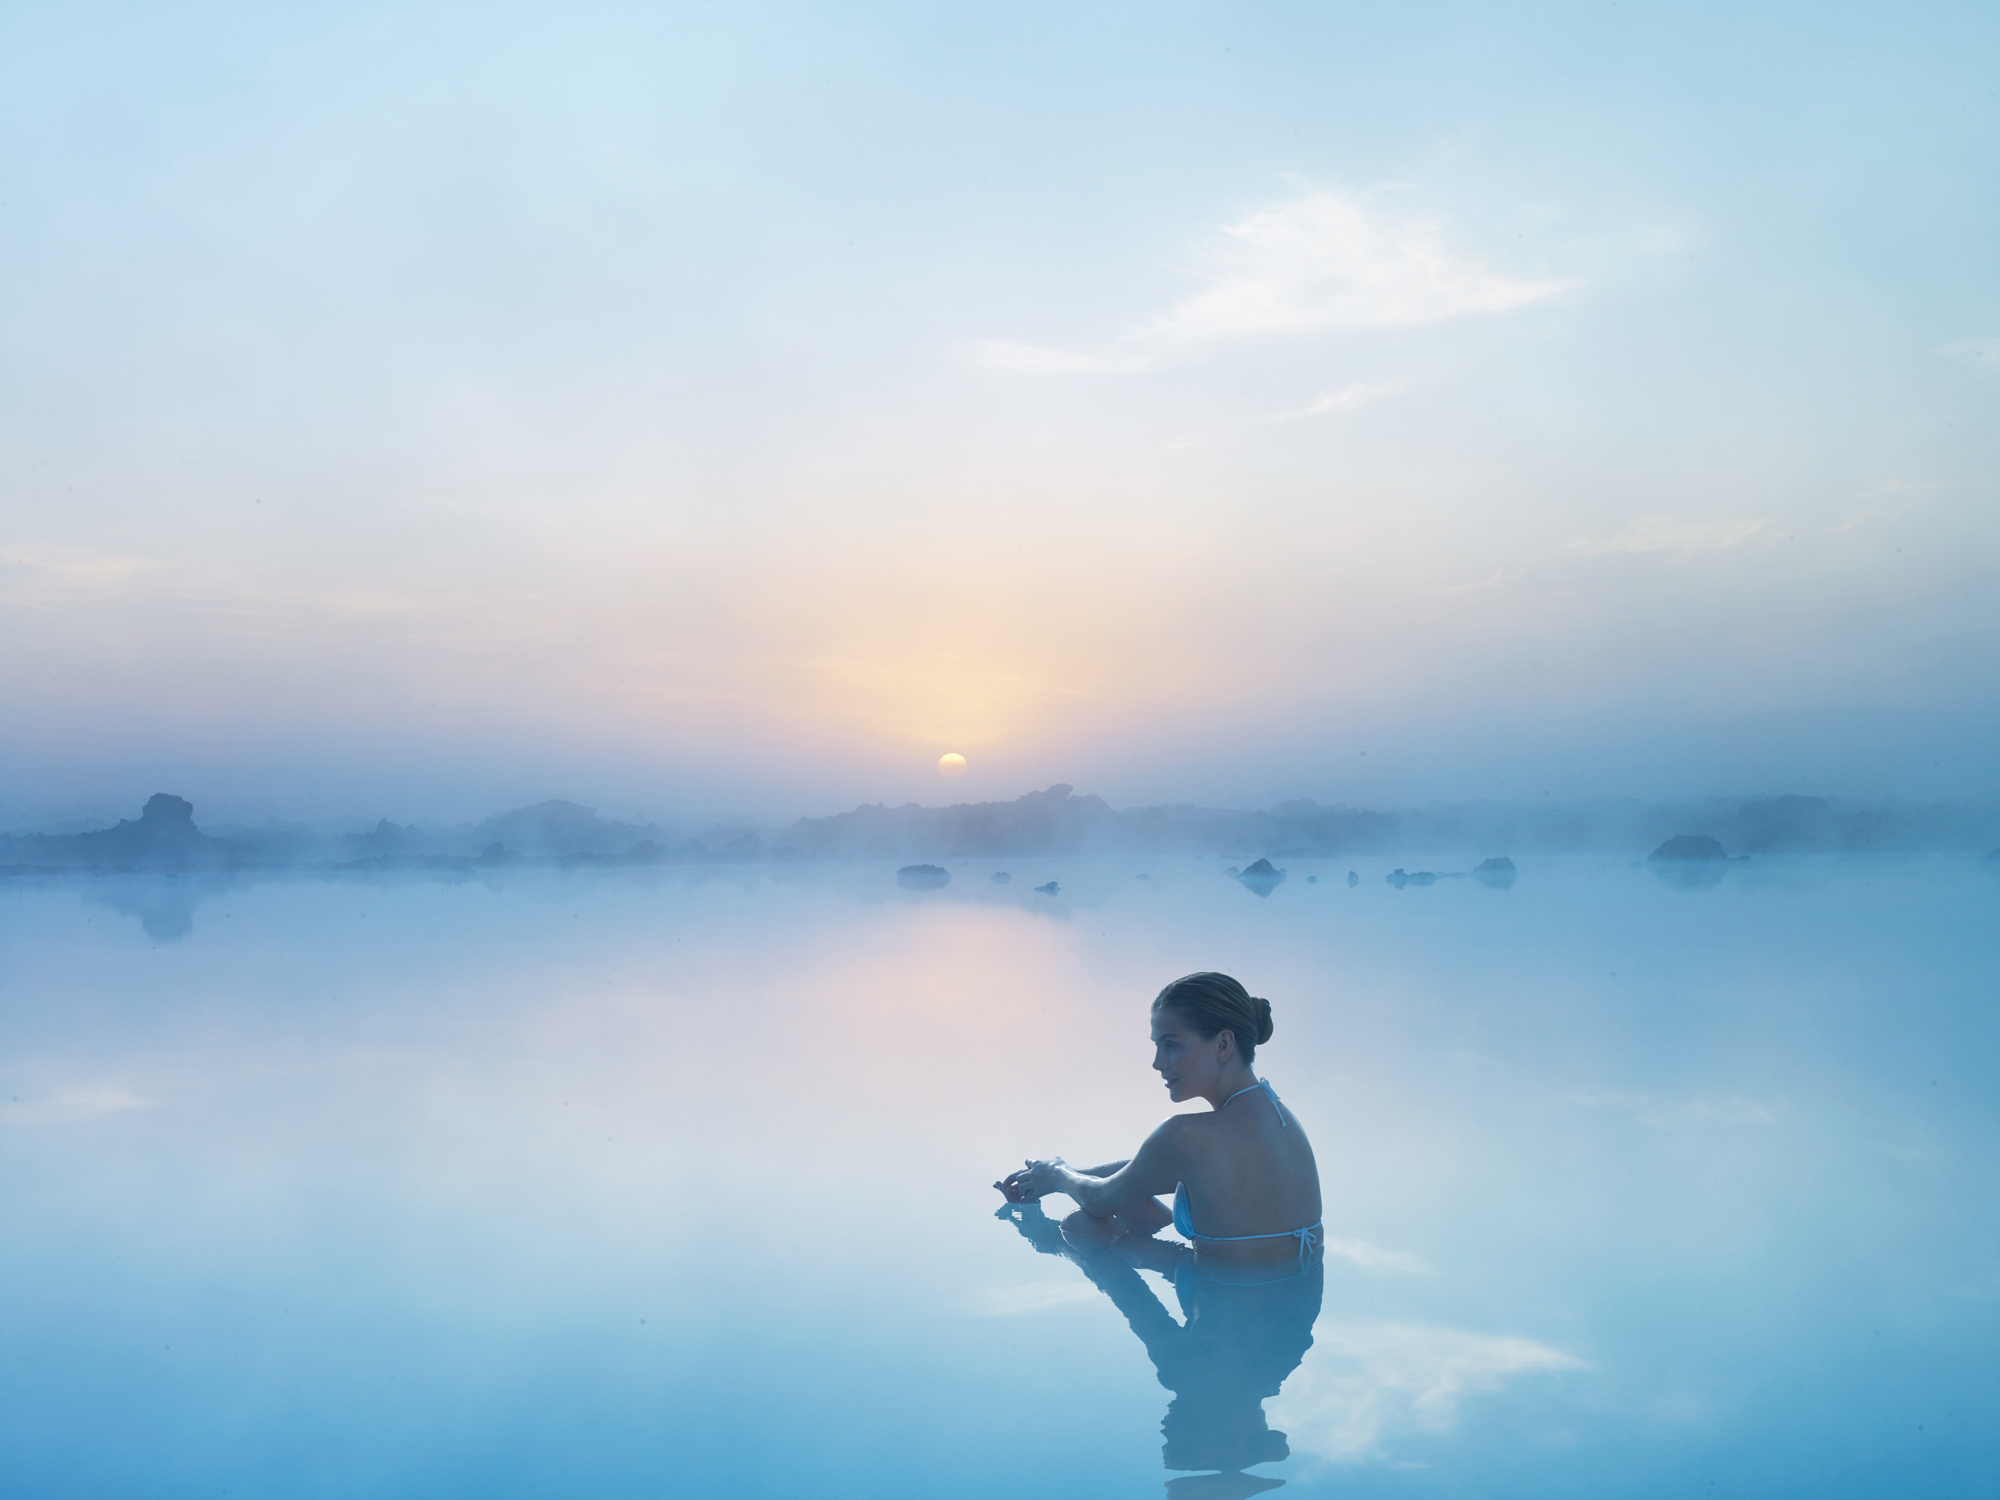 The Reykjanes Peninsula has a host of summer activities that visitors can partake in, although for the final day after a week of adventure, many may prefer to simply bask in the mineral-rich waters of the Blue Lagoon.